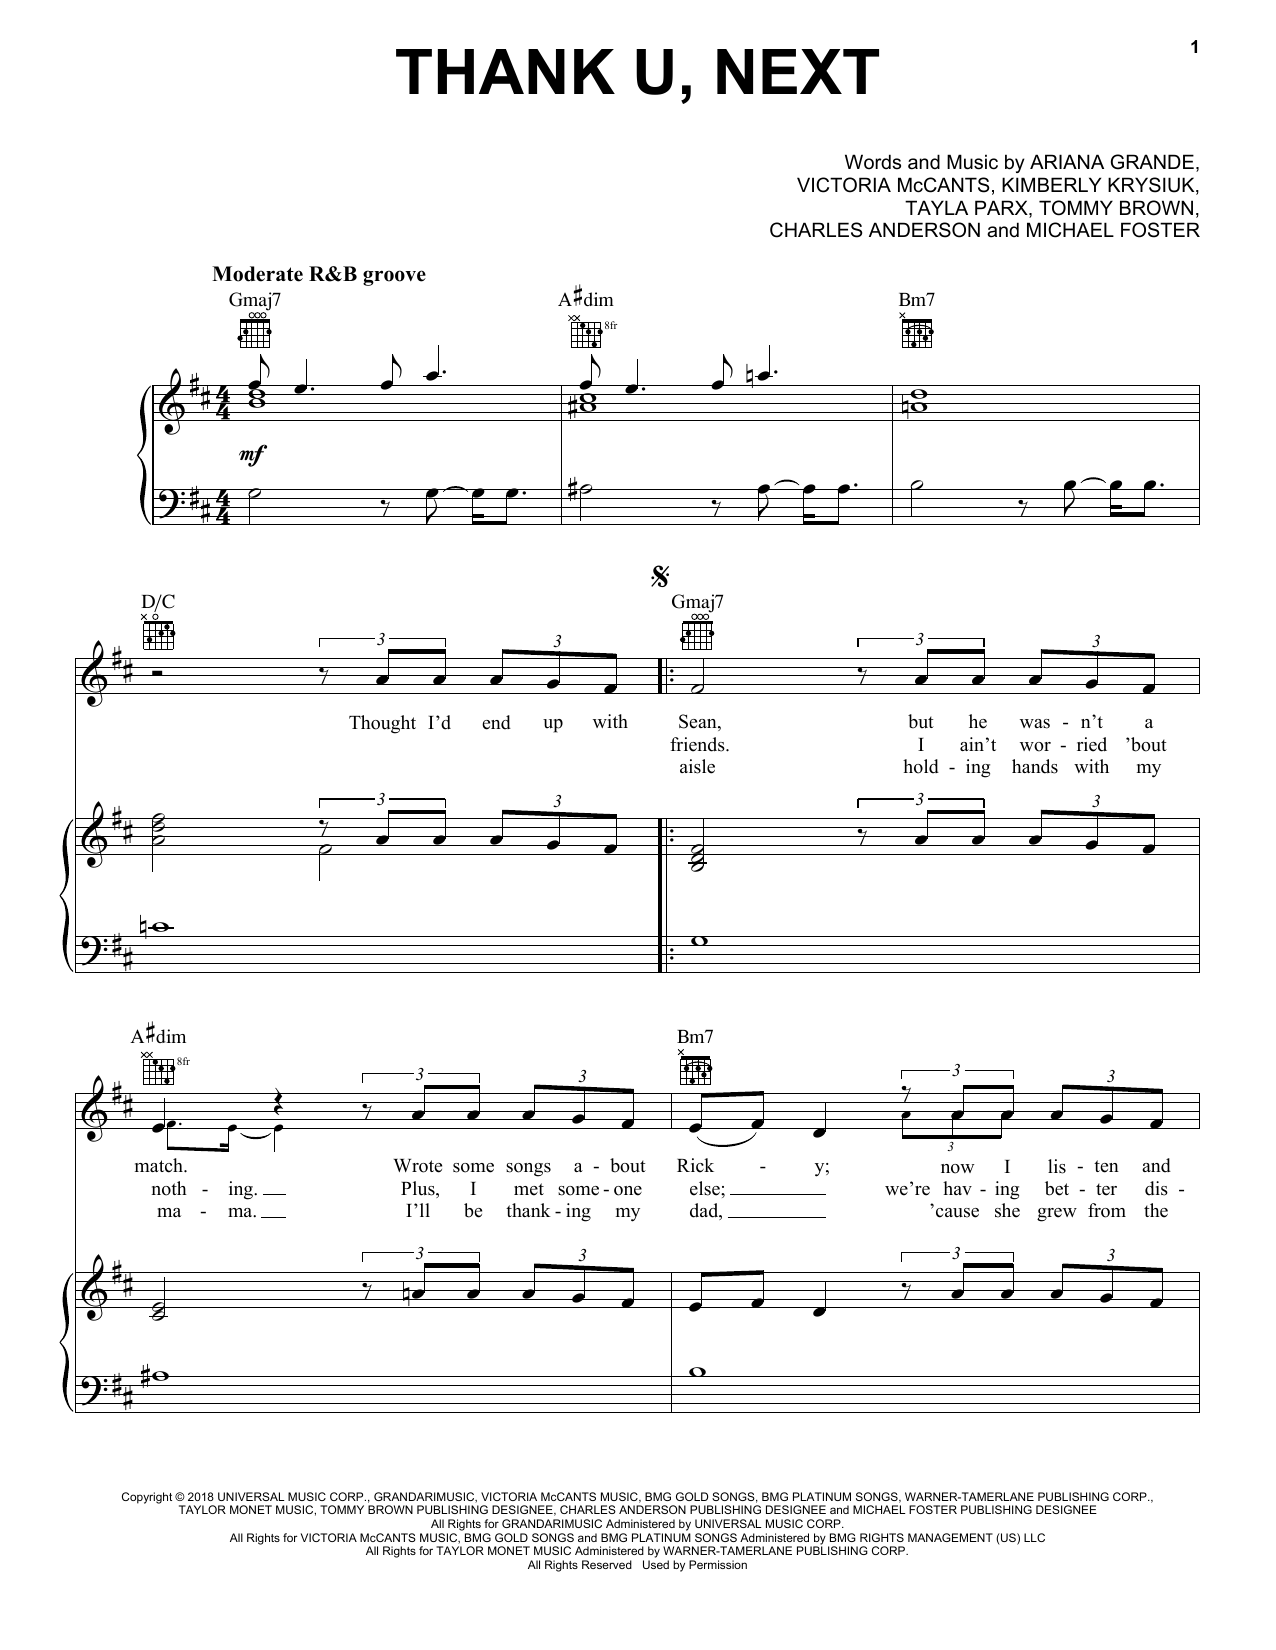 Ariana Grande thank u, next sheet music notes and chords